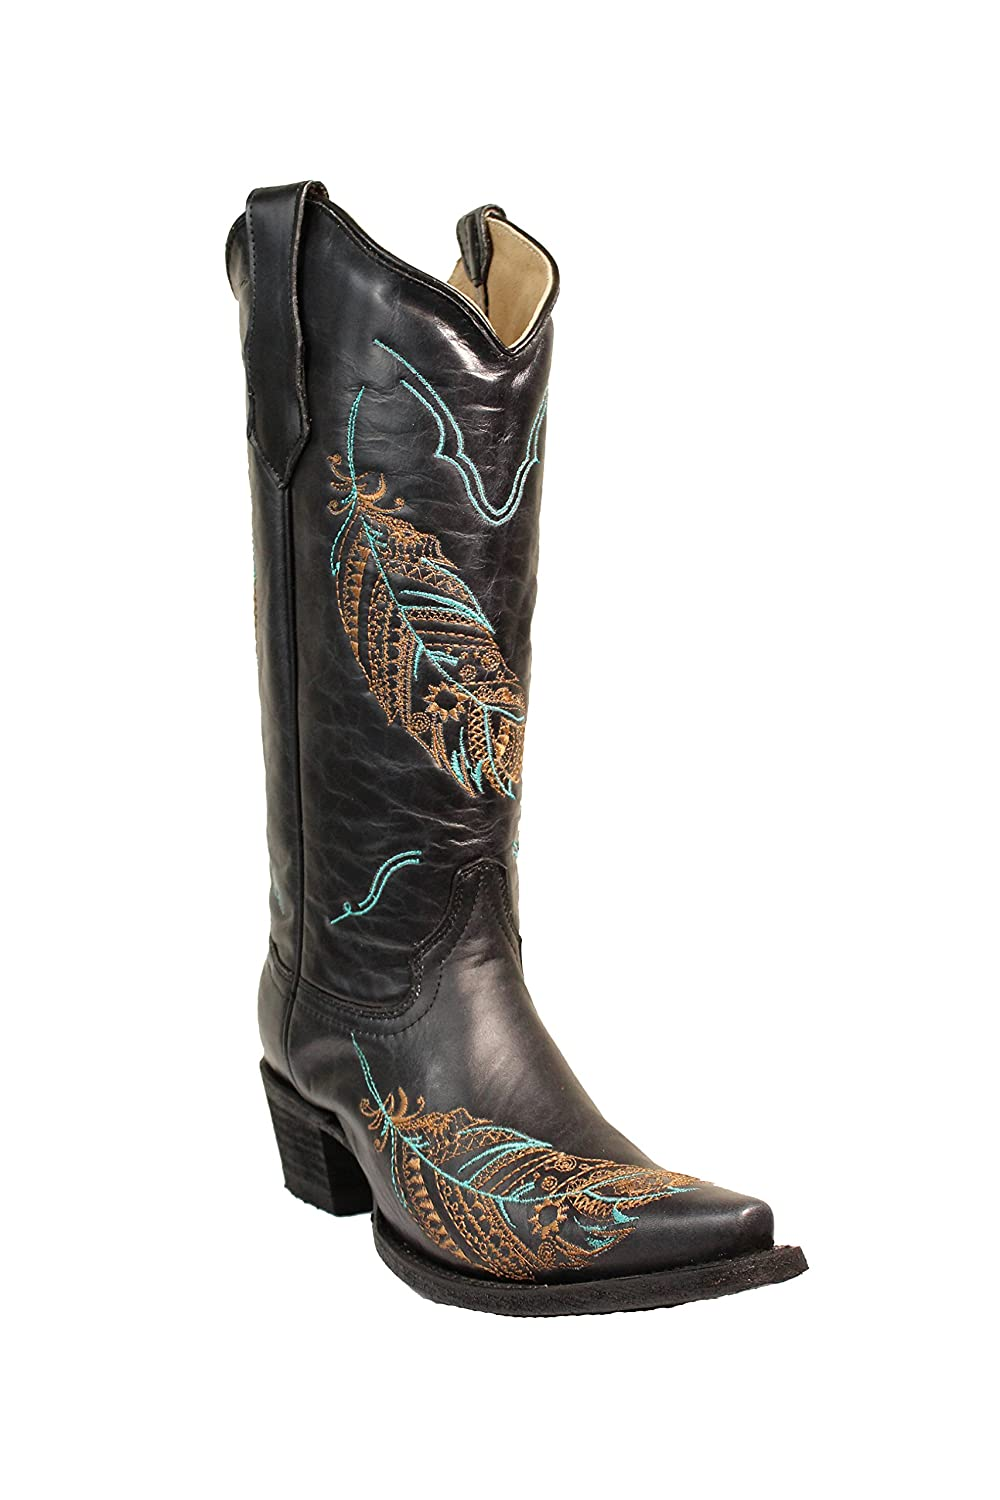 293fc696e83 Corral Circle G Women's 14-inch Black Turquoise/Tan Feather Embroidery Snip  Toe Pull-On Cowboy Boots - Sizes 5-12 B